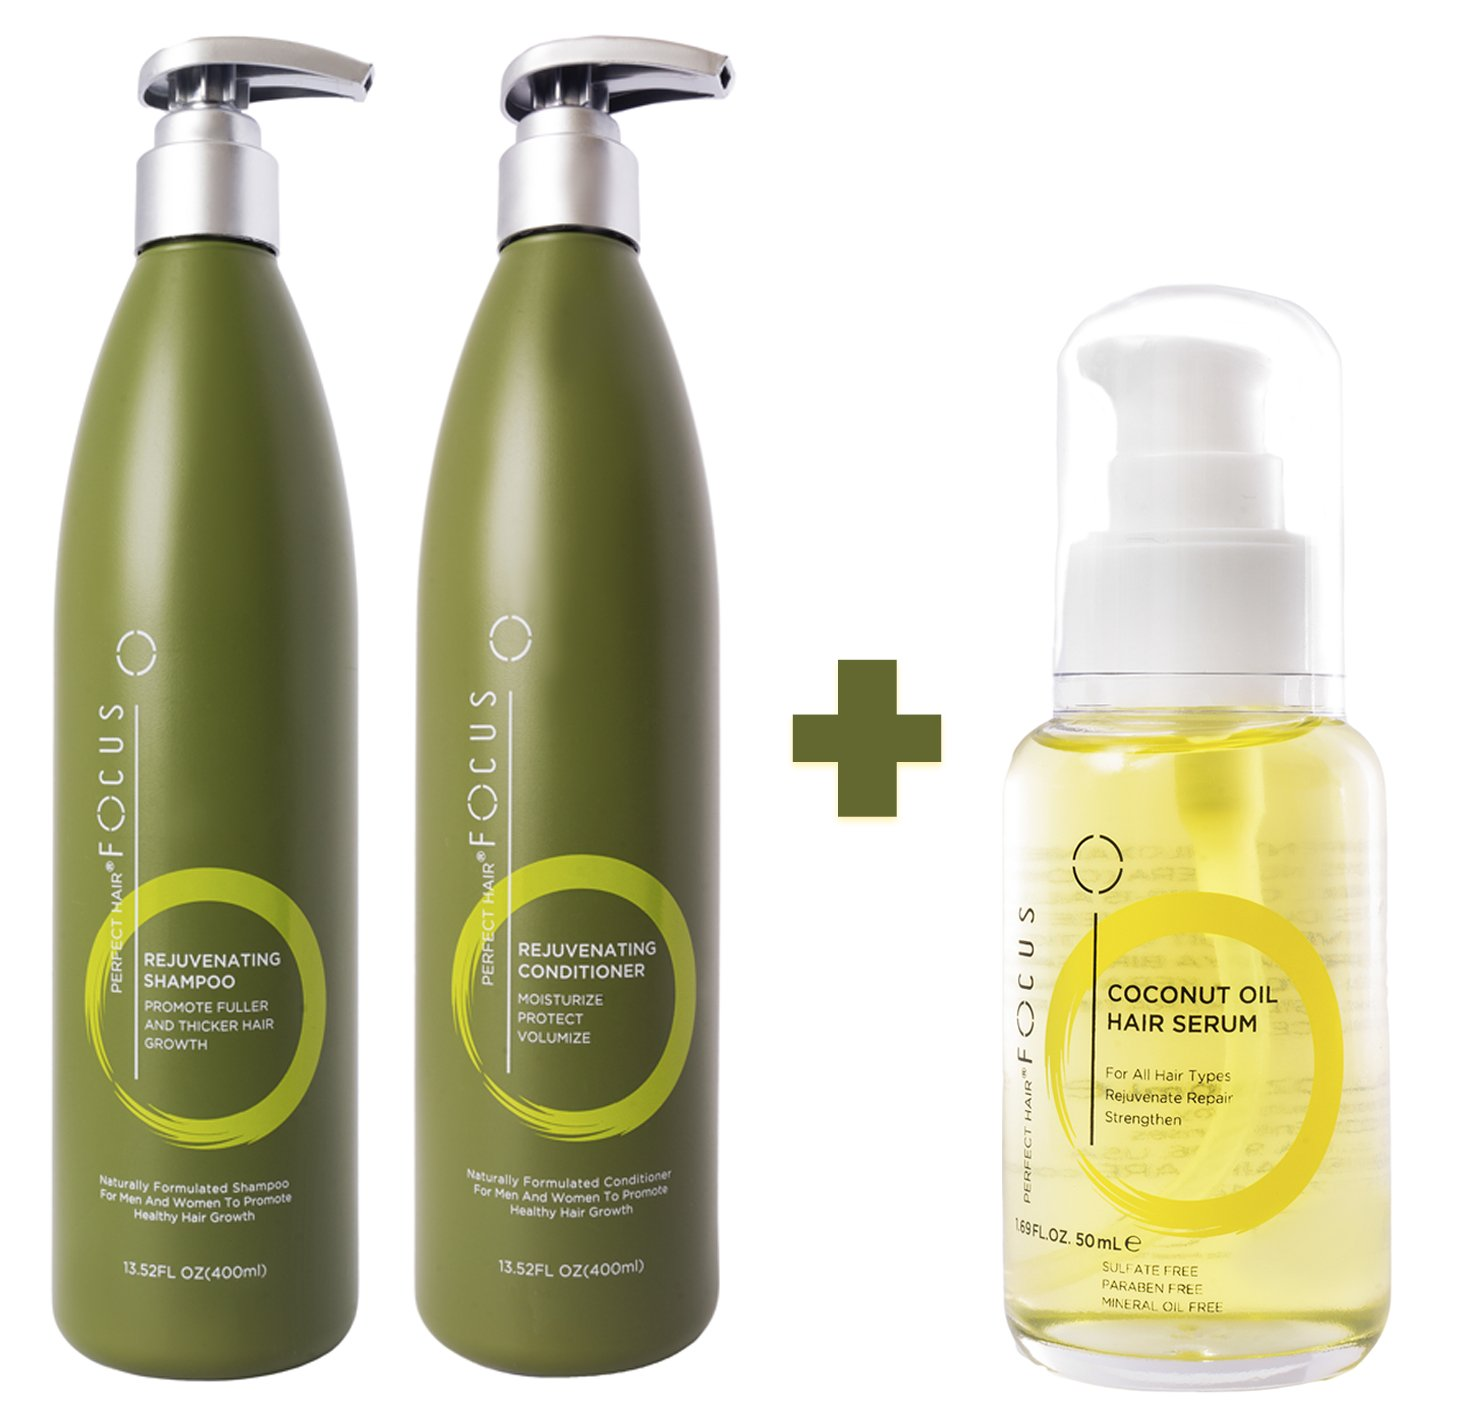 Hair Growth Shampoo and Conditioner Bundle with Hair Oil - Deep Conditioning Hair Treatment Hydrates & Reduces Frizz While Restoring Your Natural Hair - All in One Hair Care - (3 Items)